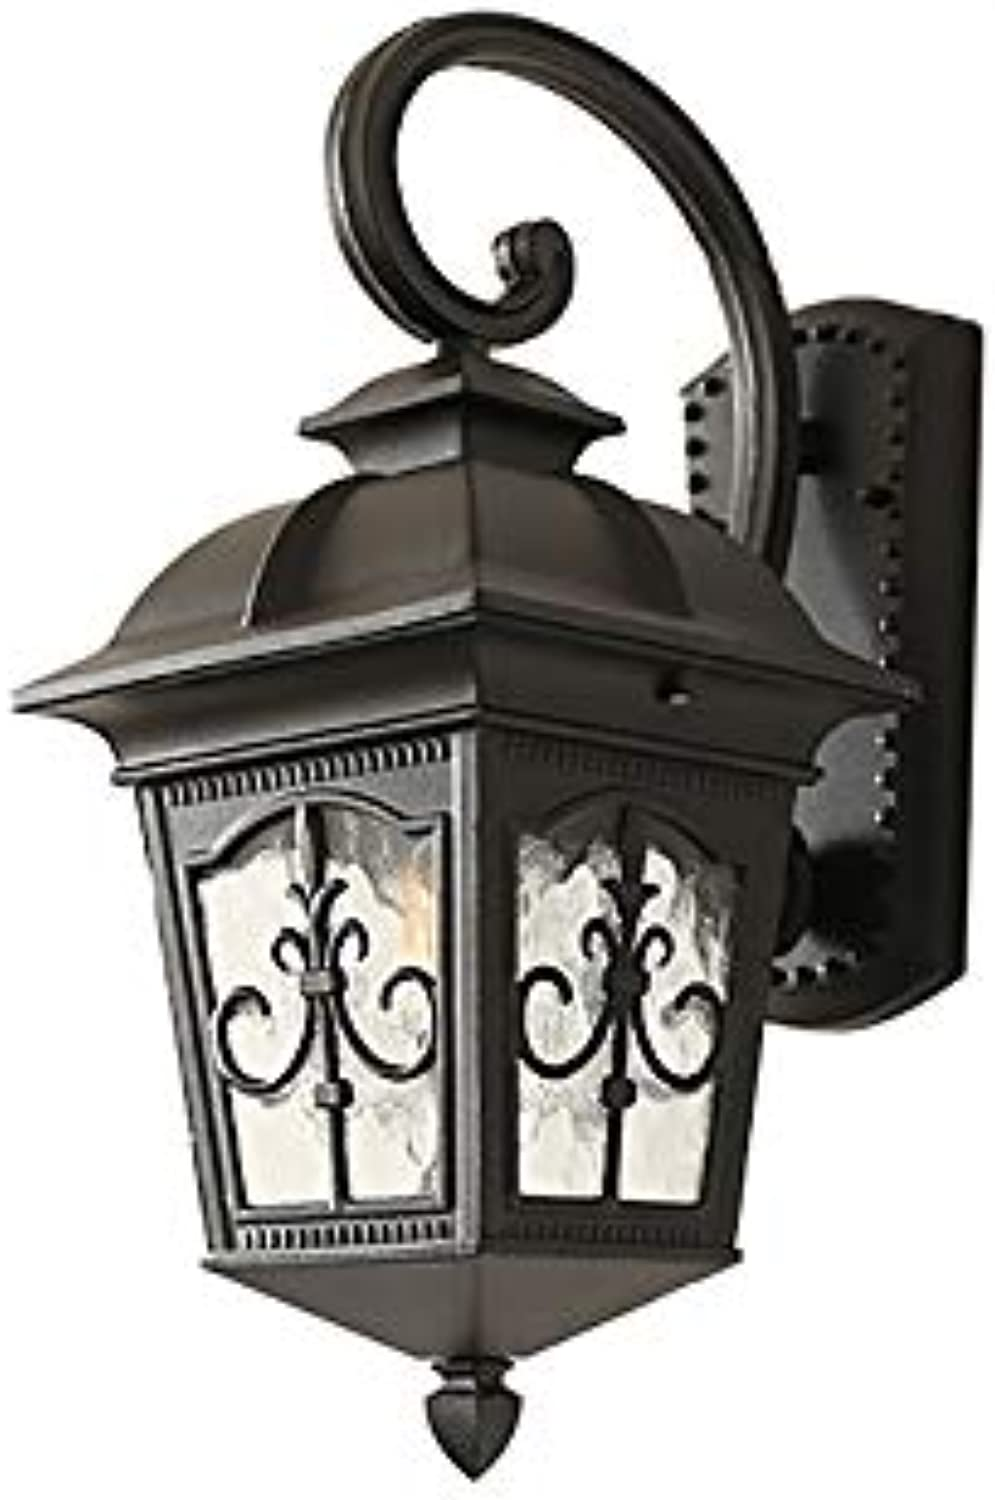 Garden Waterproof Wall Lights European Retro Lantern Wall Sconce Mounted Antique for Home Open-air Patio Yard Villa Stairs Decoration with E27 Light Source Fitting,schwarz